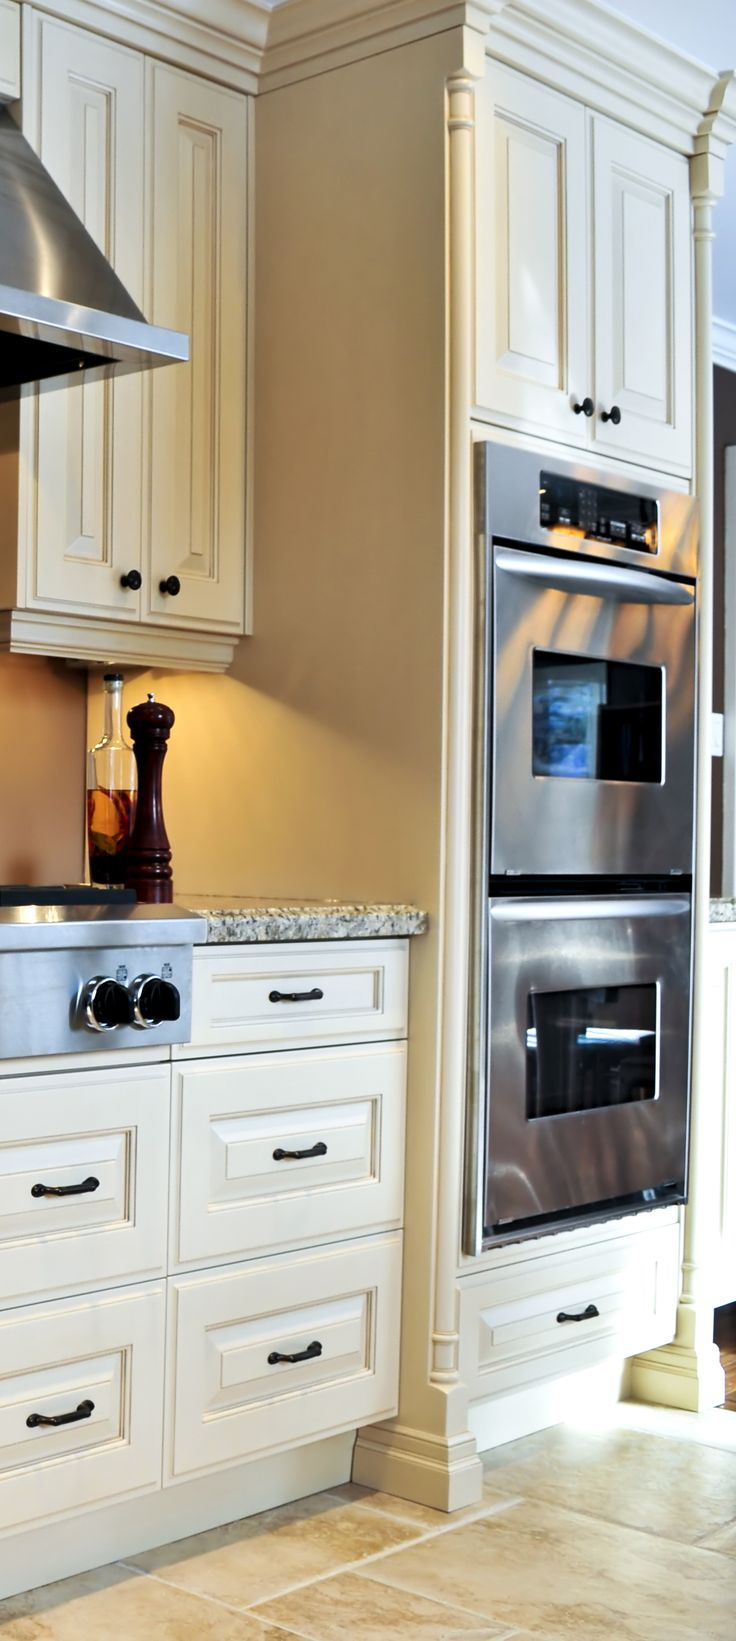 Classic Off White Kitchen With Gas Cook Top And Wall Ovens Www Prasadakitchens